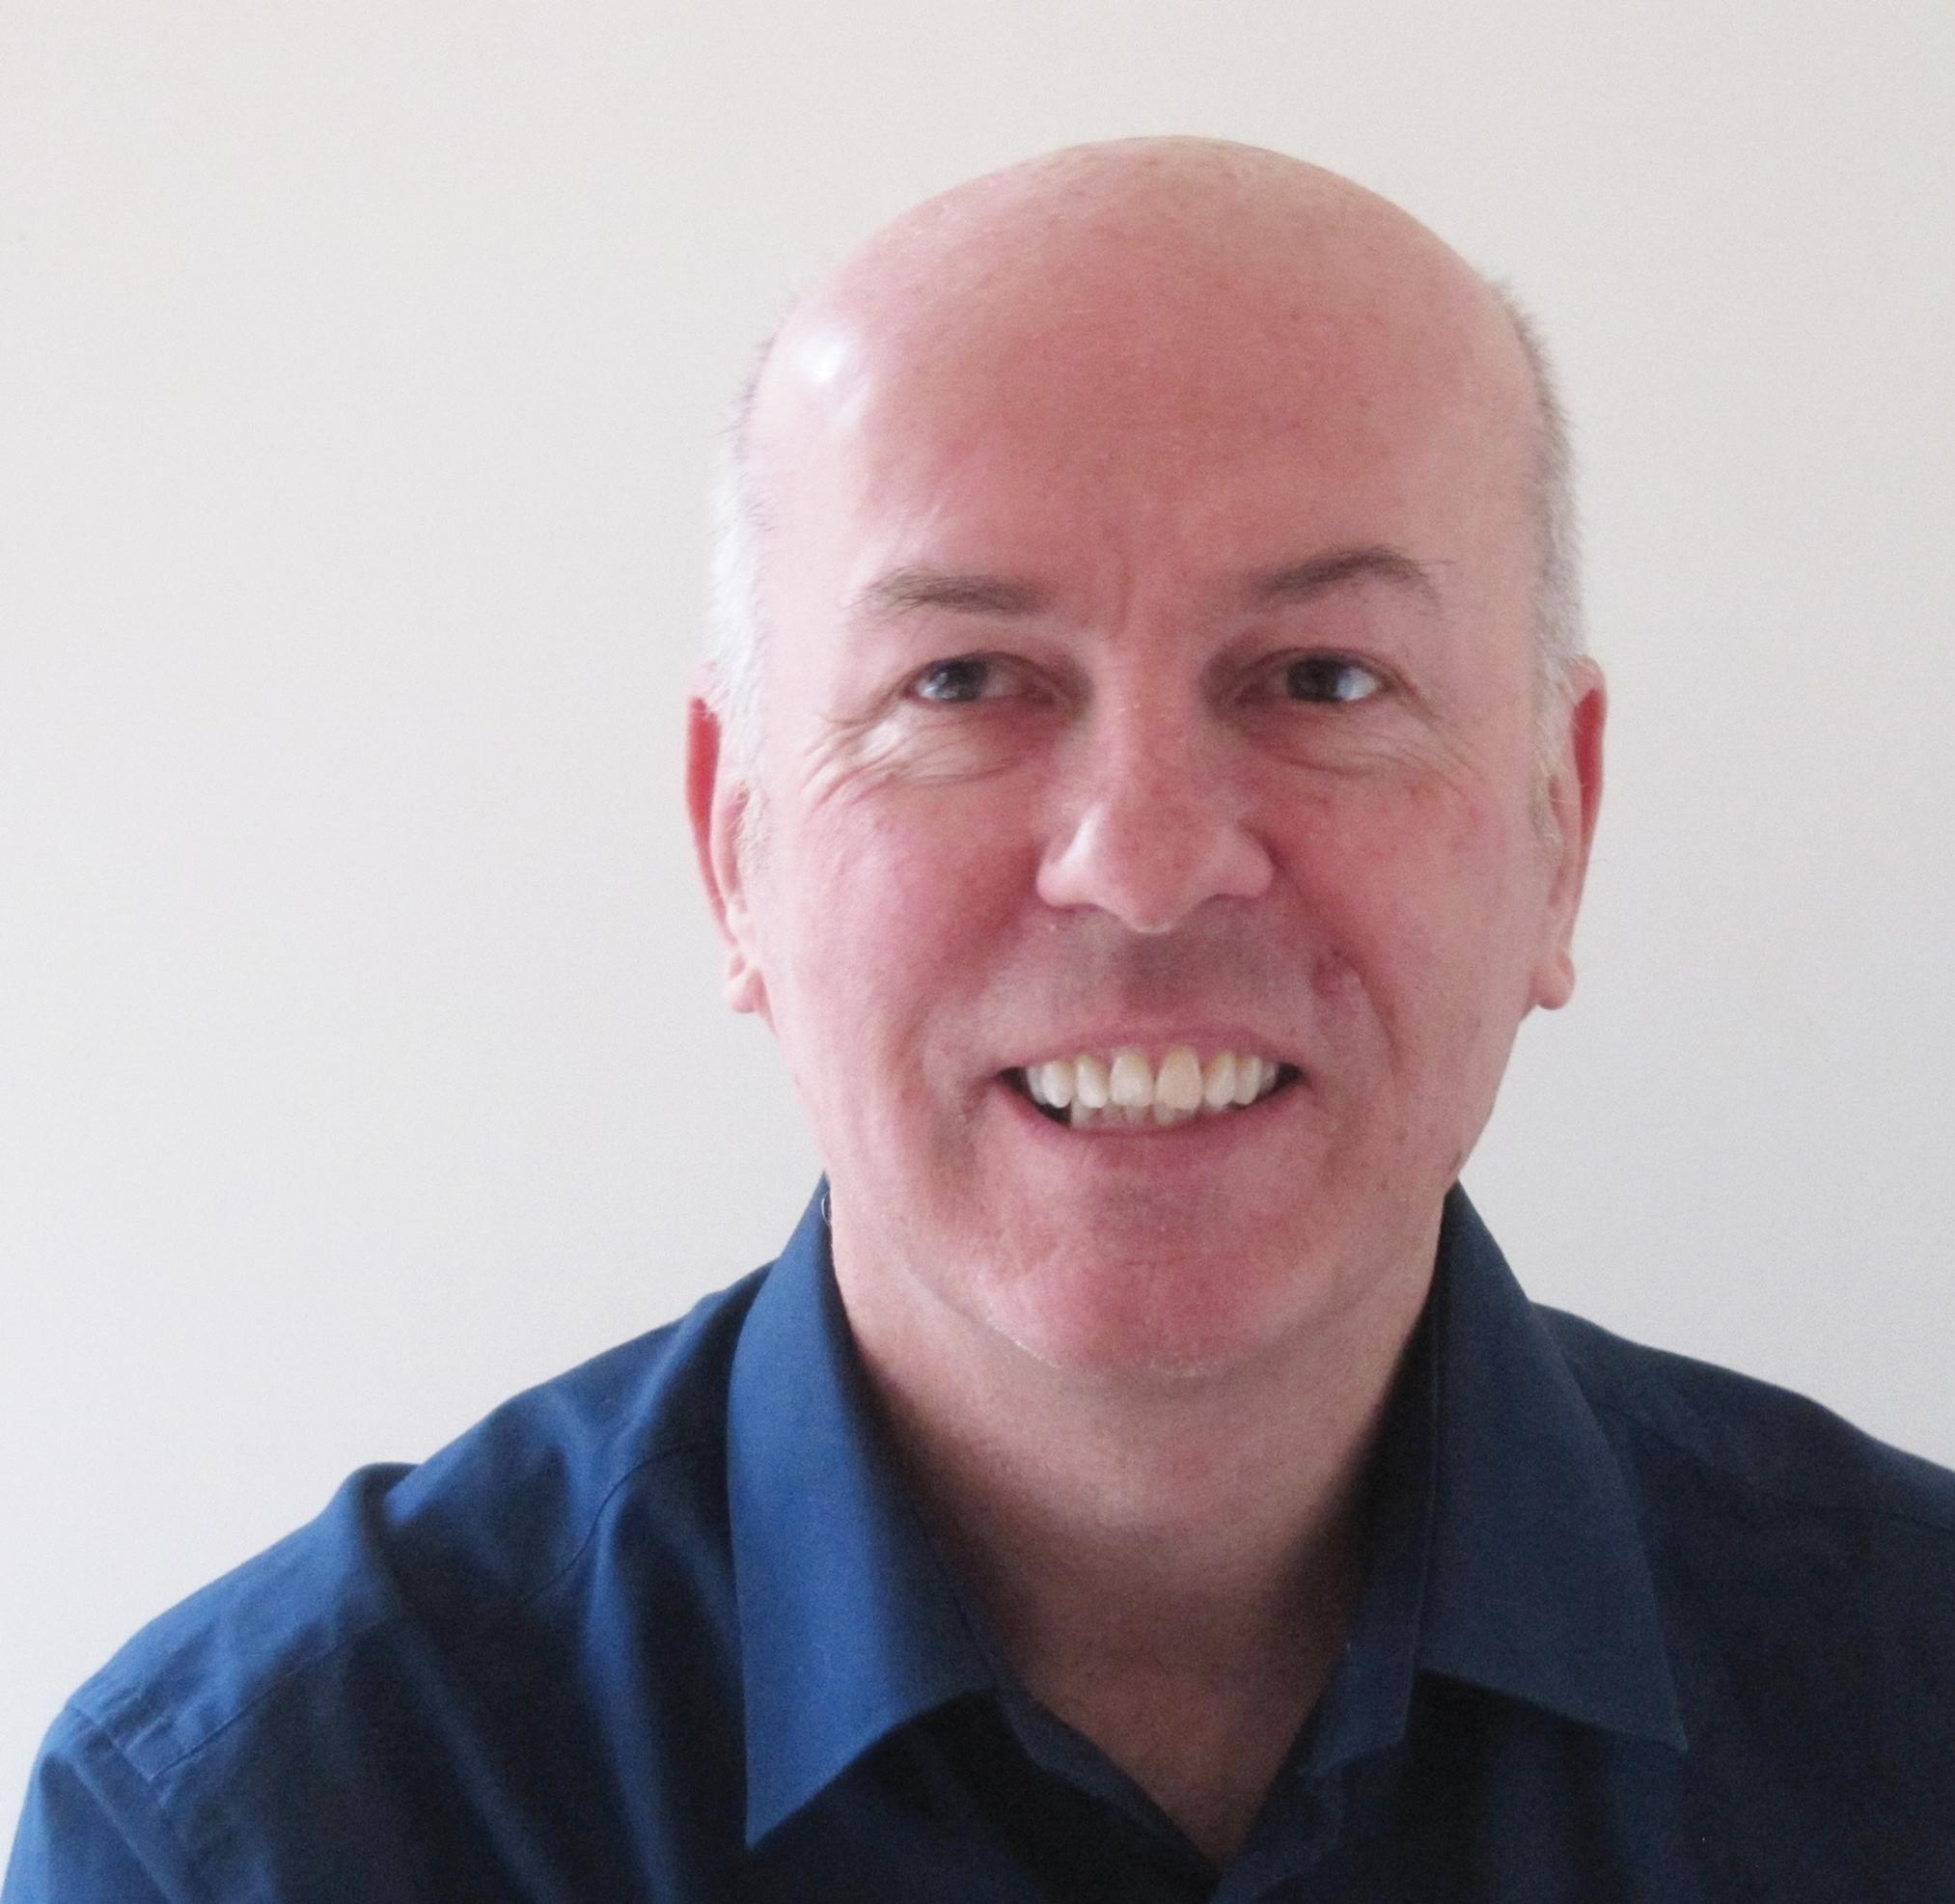 David Hunter runs Not for Profit Planning and is a former accessible transport manager for the City of Edinburgh Council.